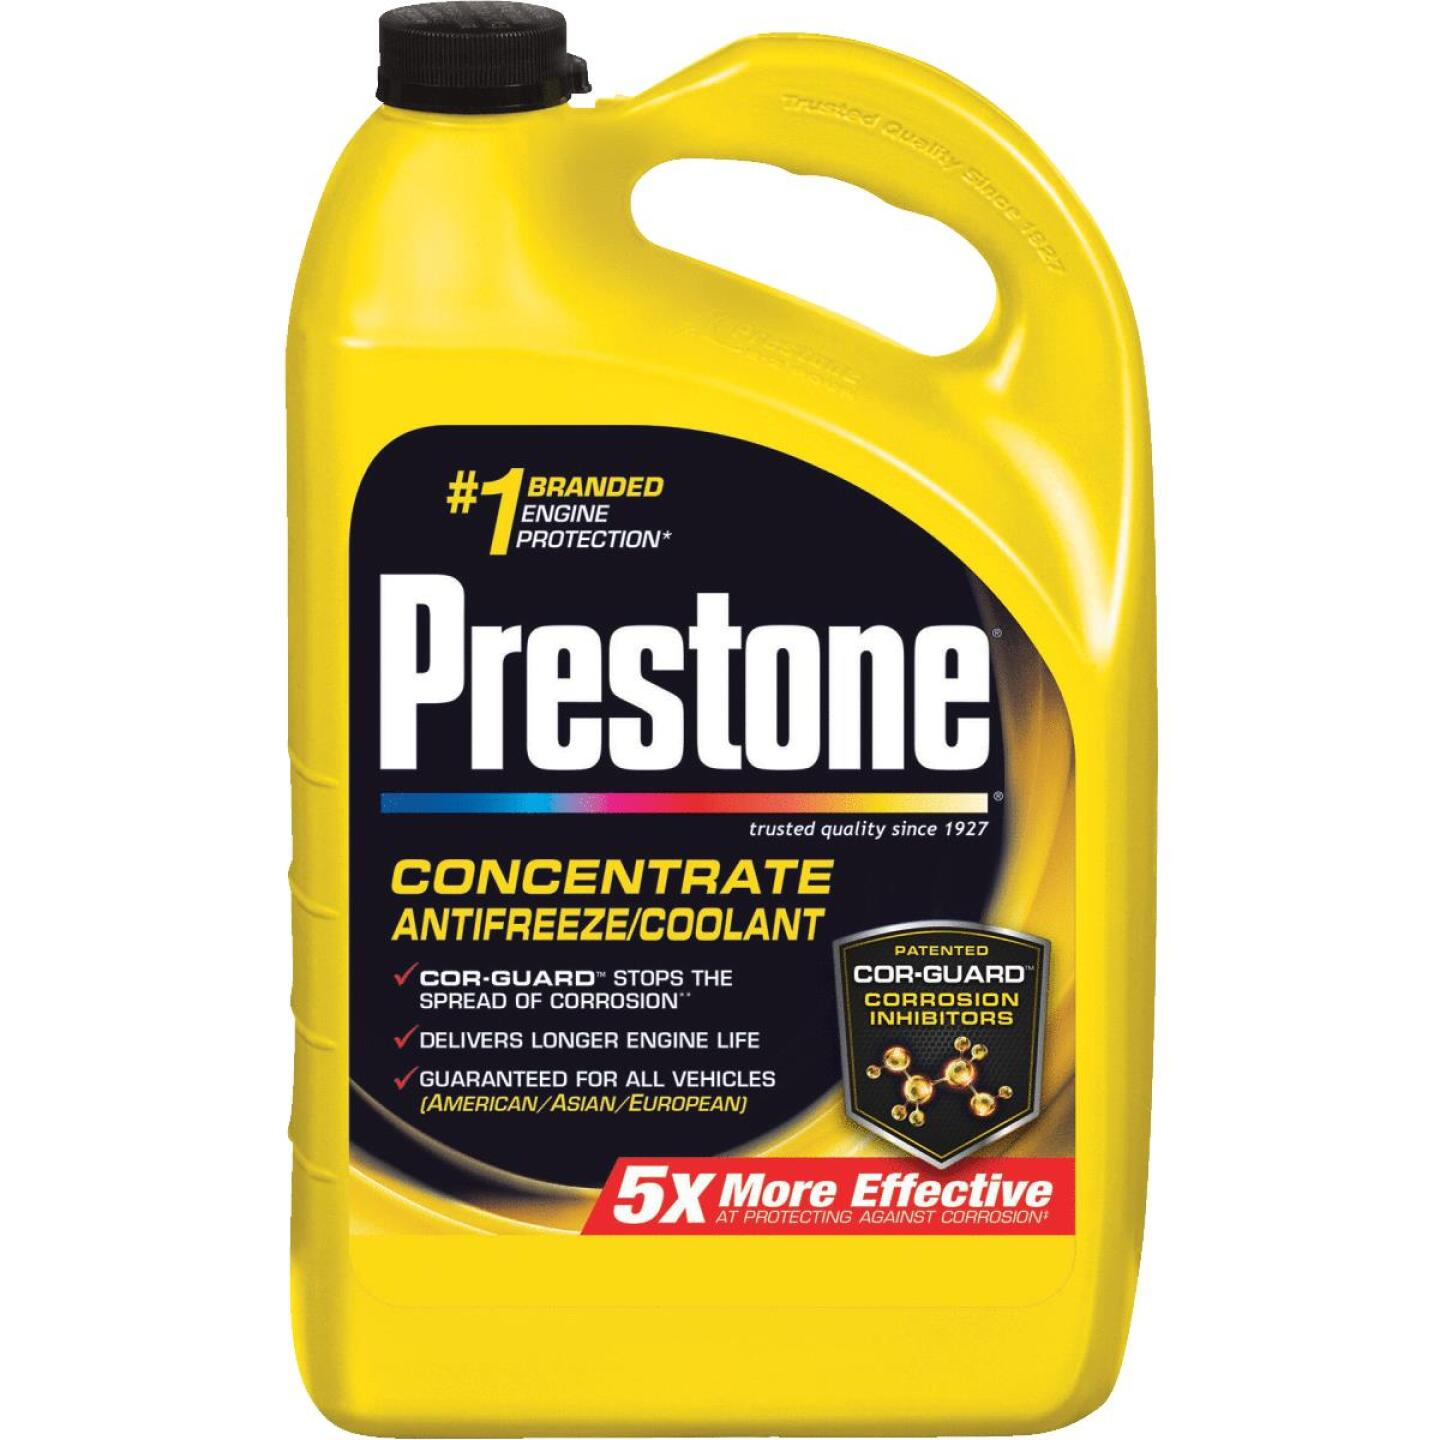 Prestone Gallon Concentrate -84 F to 276 F Automotive Antifreeze Image 1